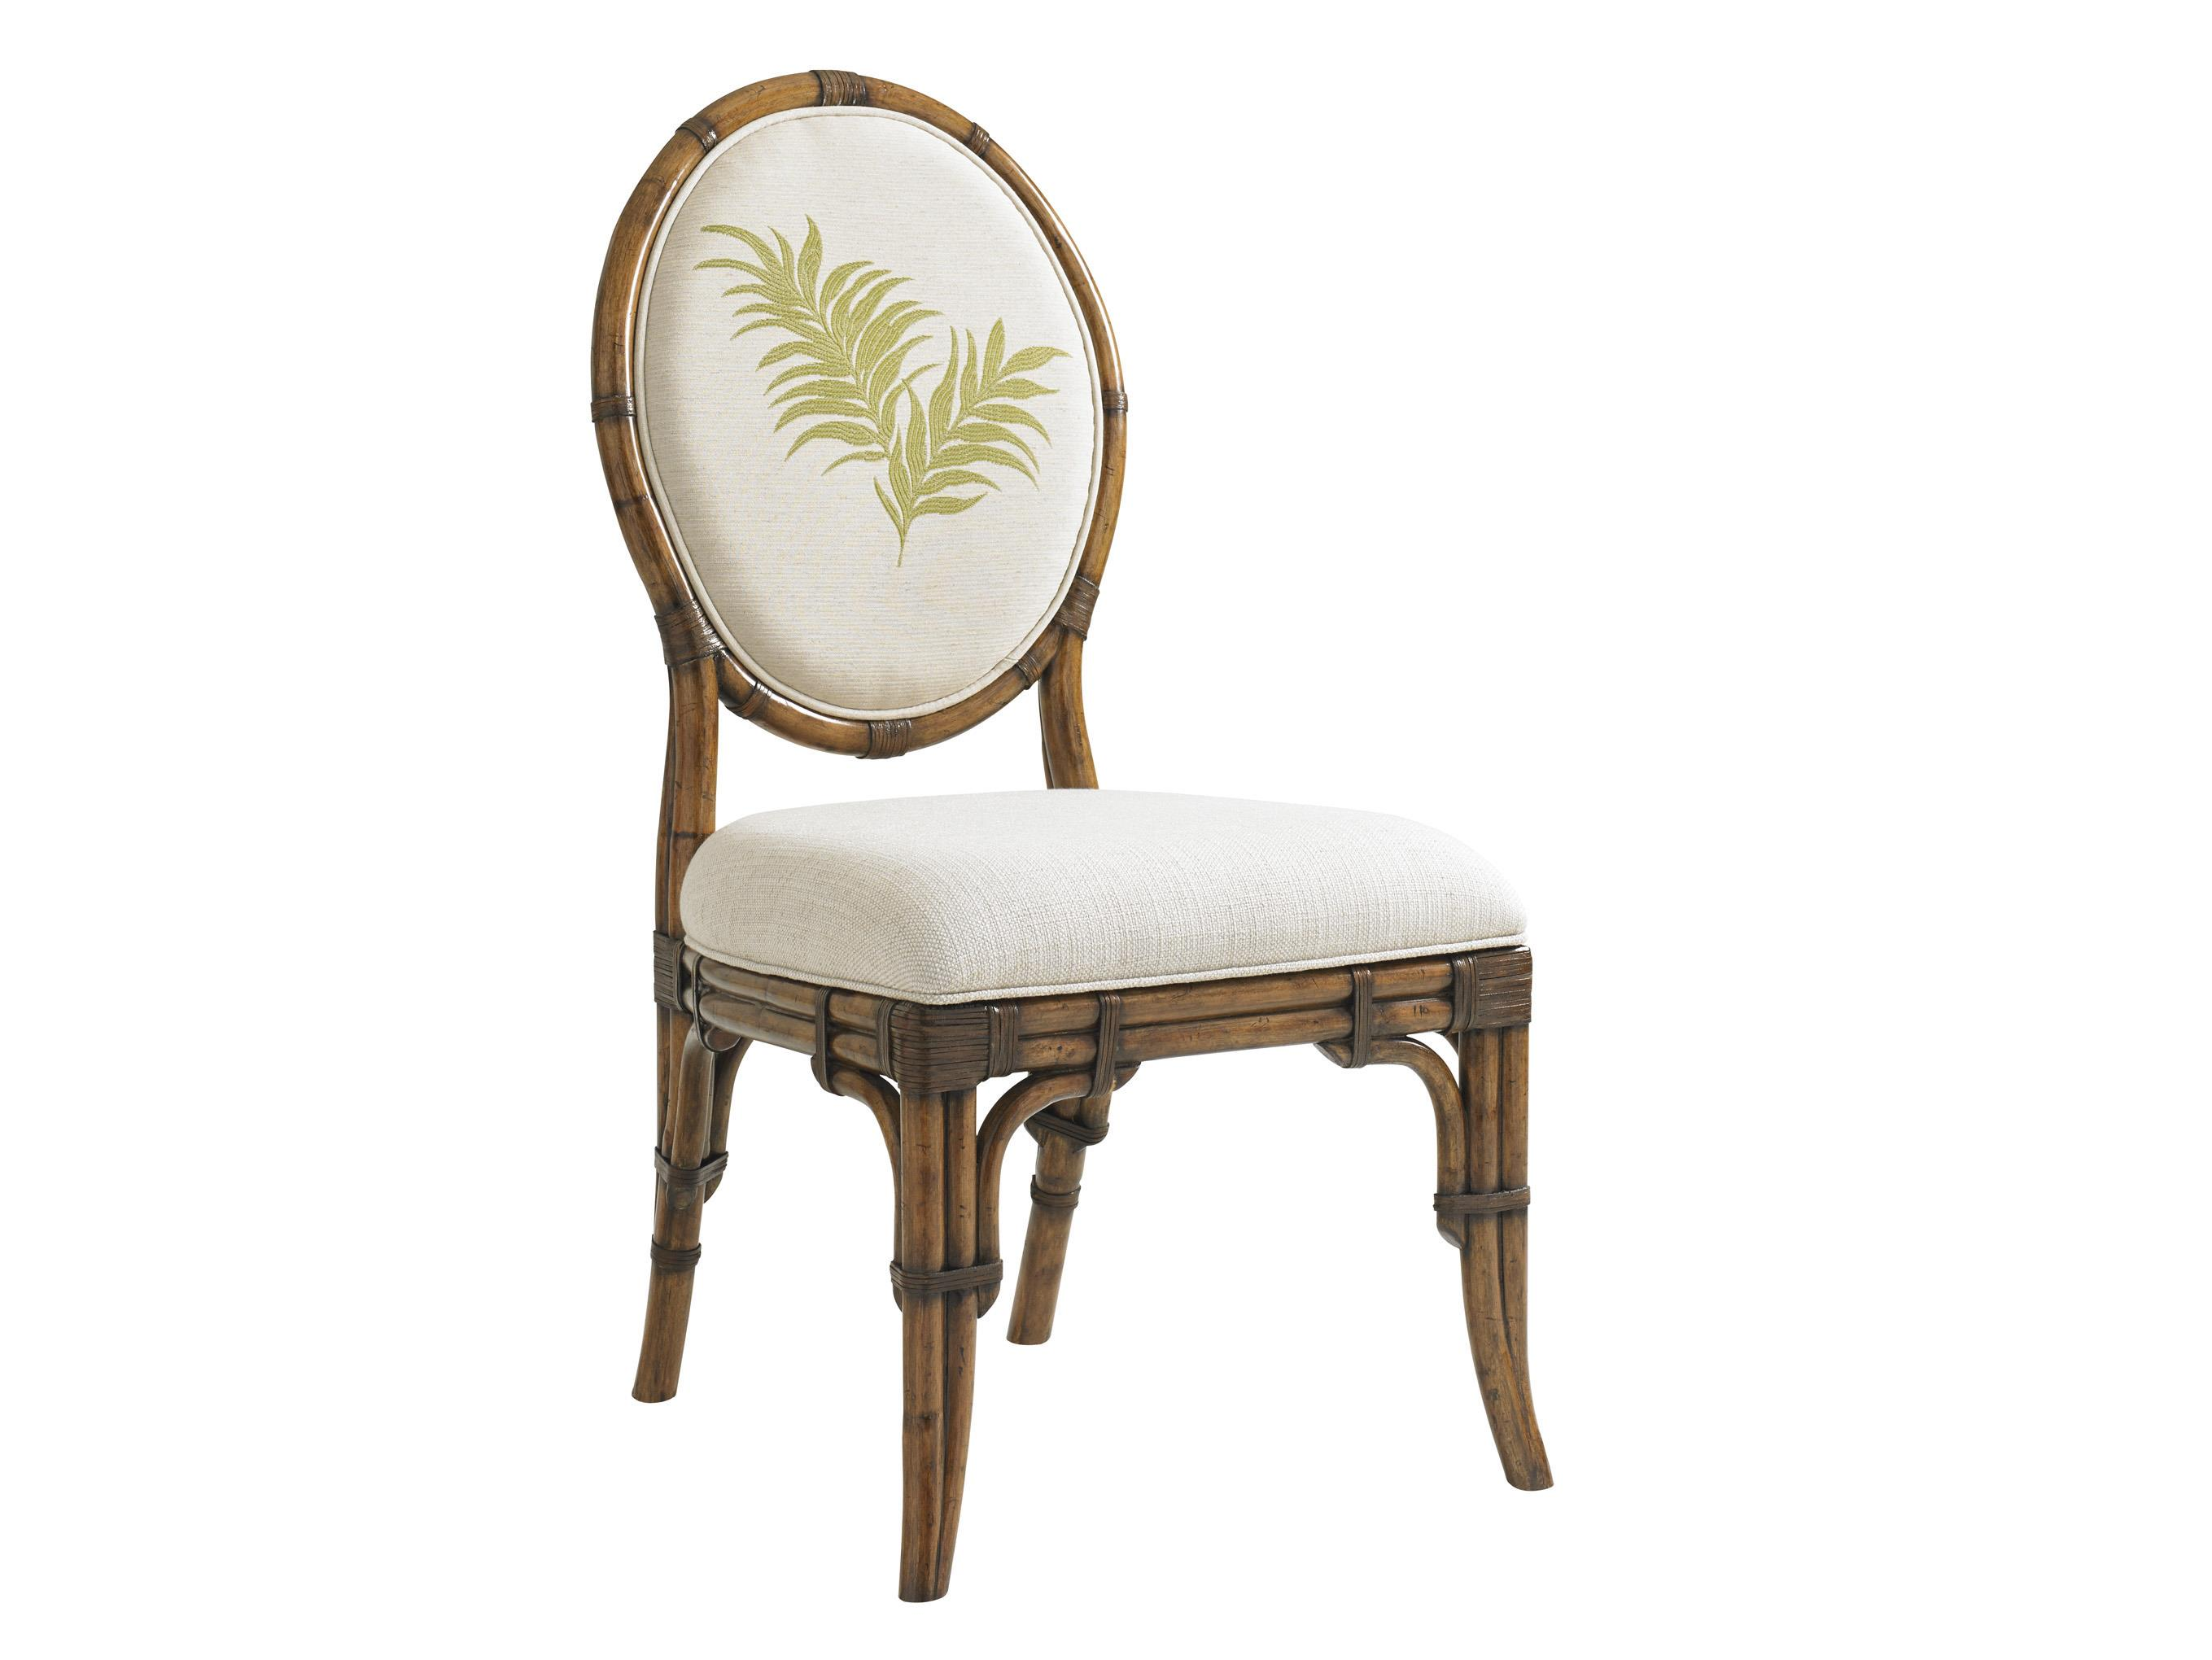 Bali Hai Quickship Gulfstream Oval Back Side Chair by Tommy Bahama Home at Baer's Furniture